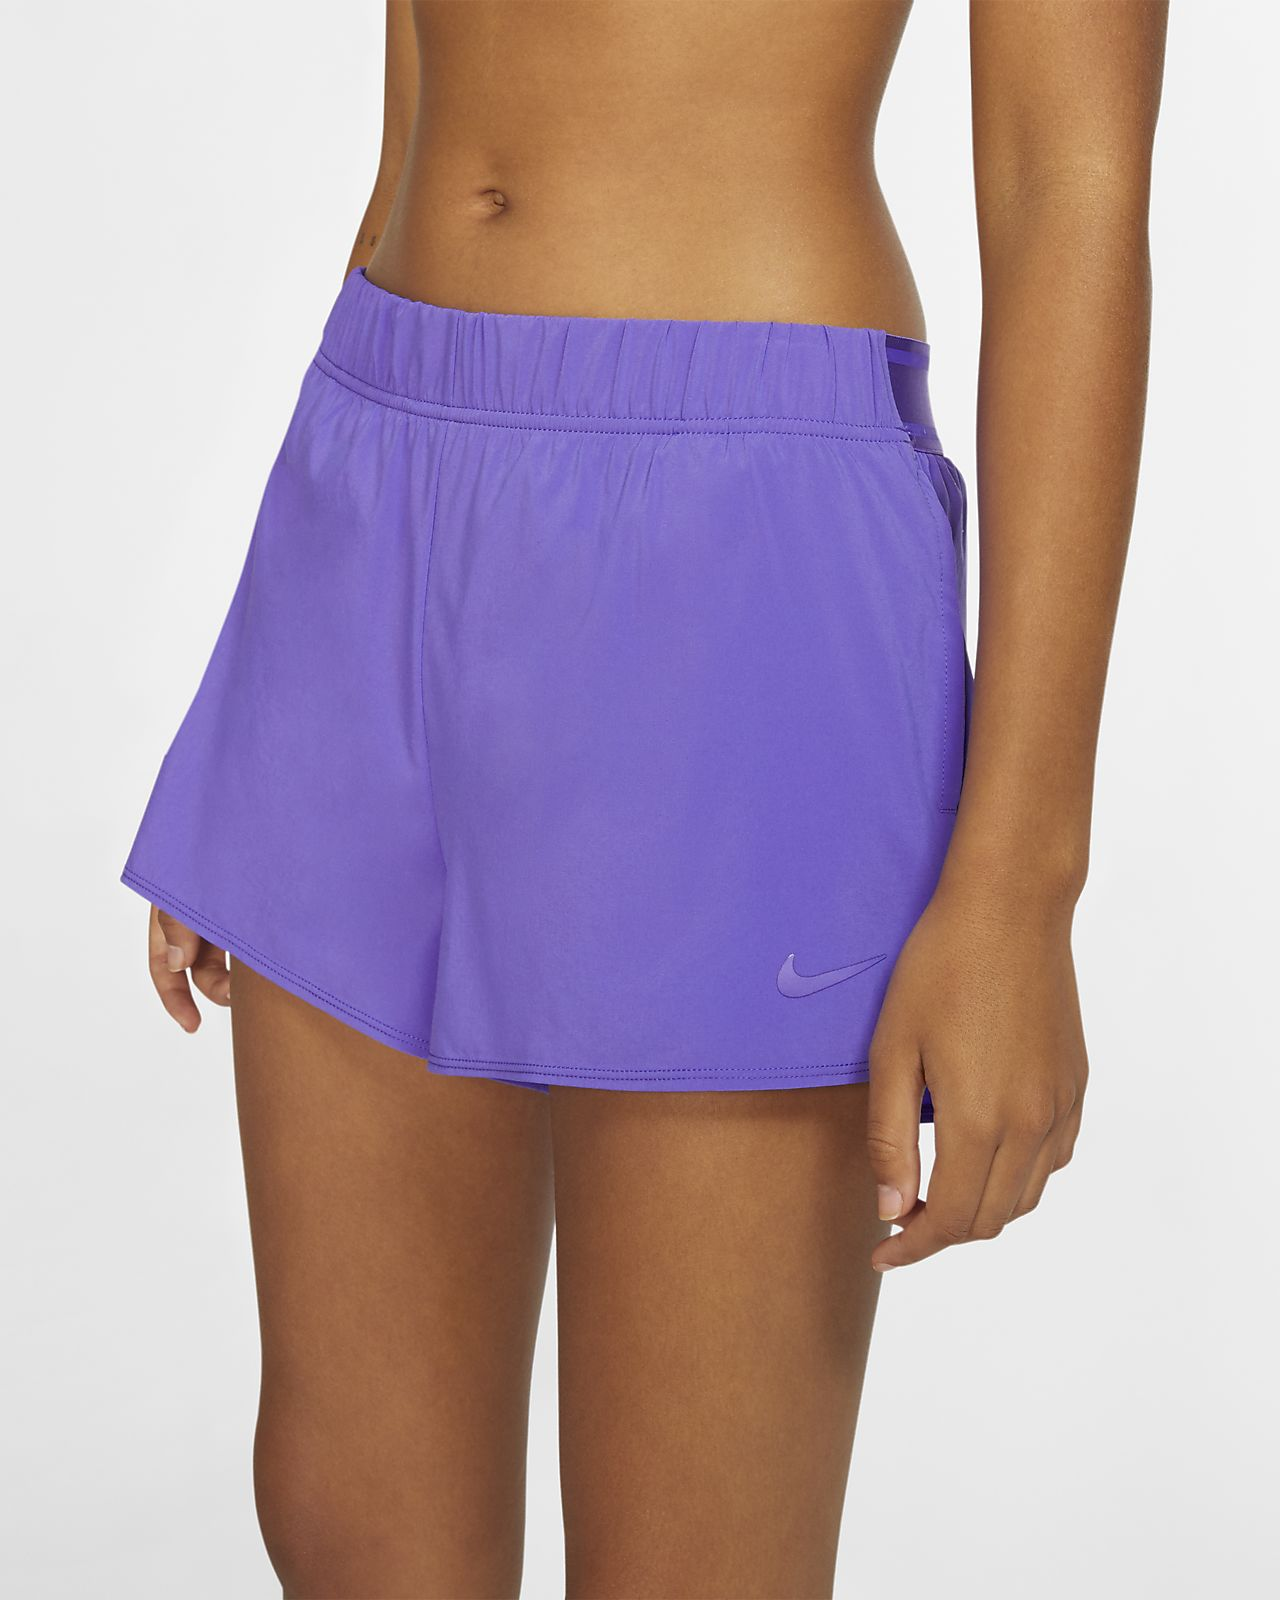 NikeCourt Flex Women's Tennis Shorts